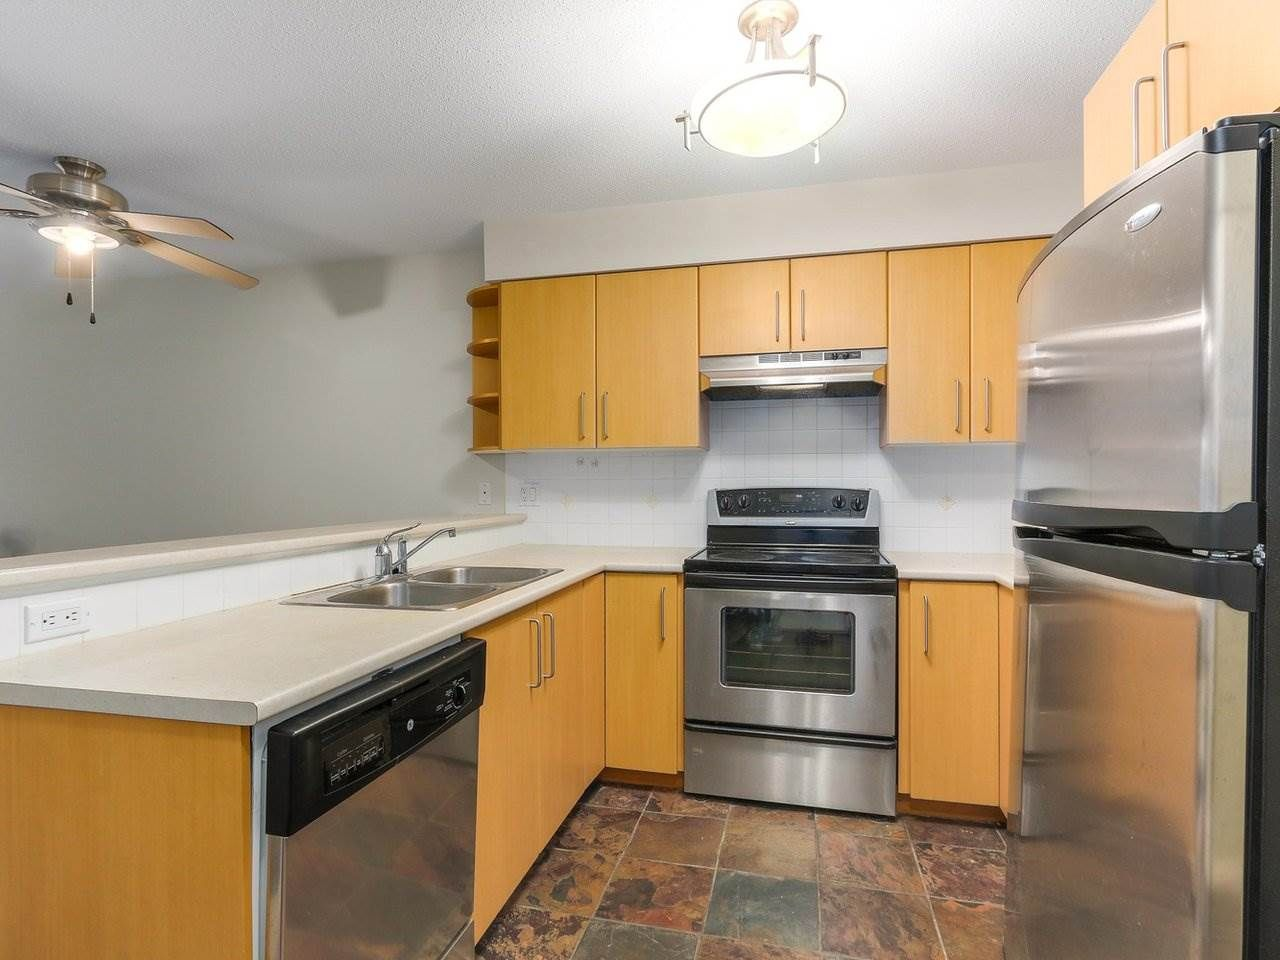 Photo 11: Photos: 205 3388 MORREY Court in Burnaby: Sullivan Heights Condo for sale (Burnaby North)  : MLS®# R2326824